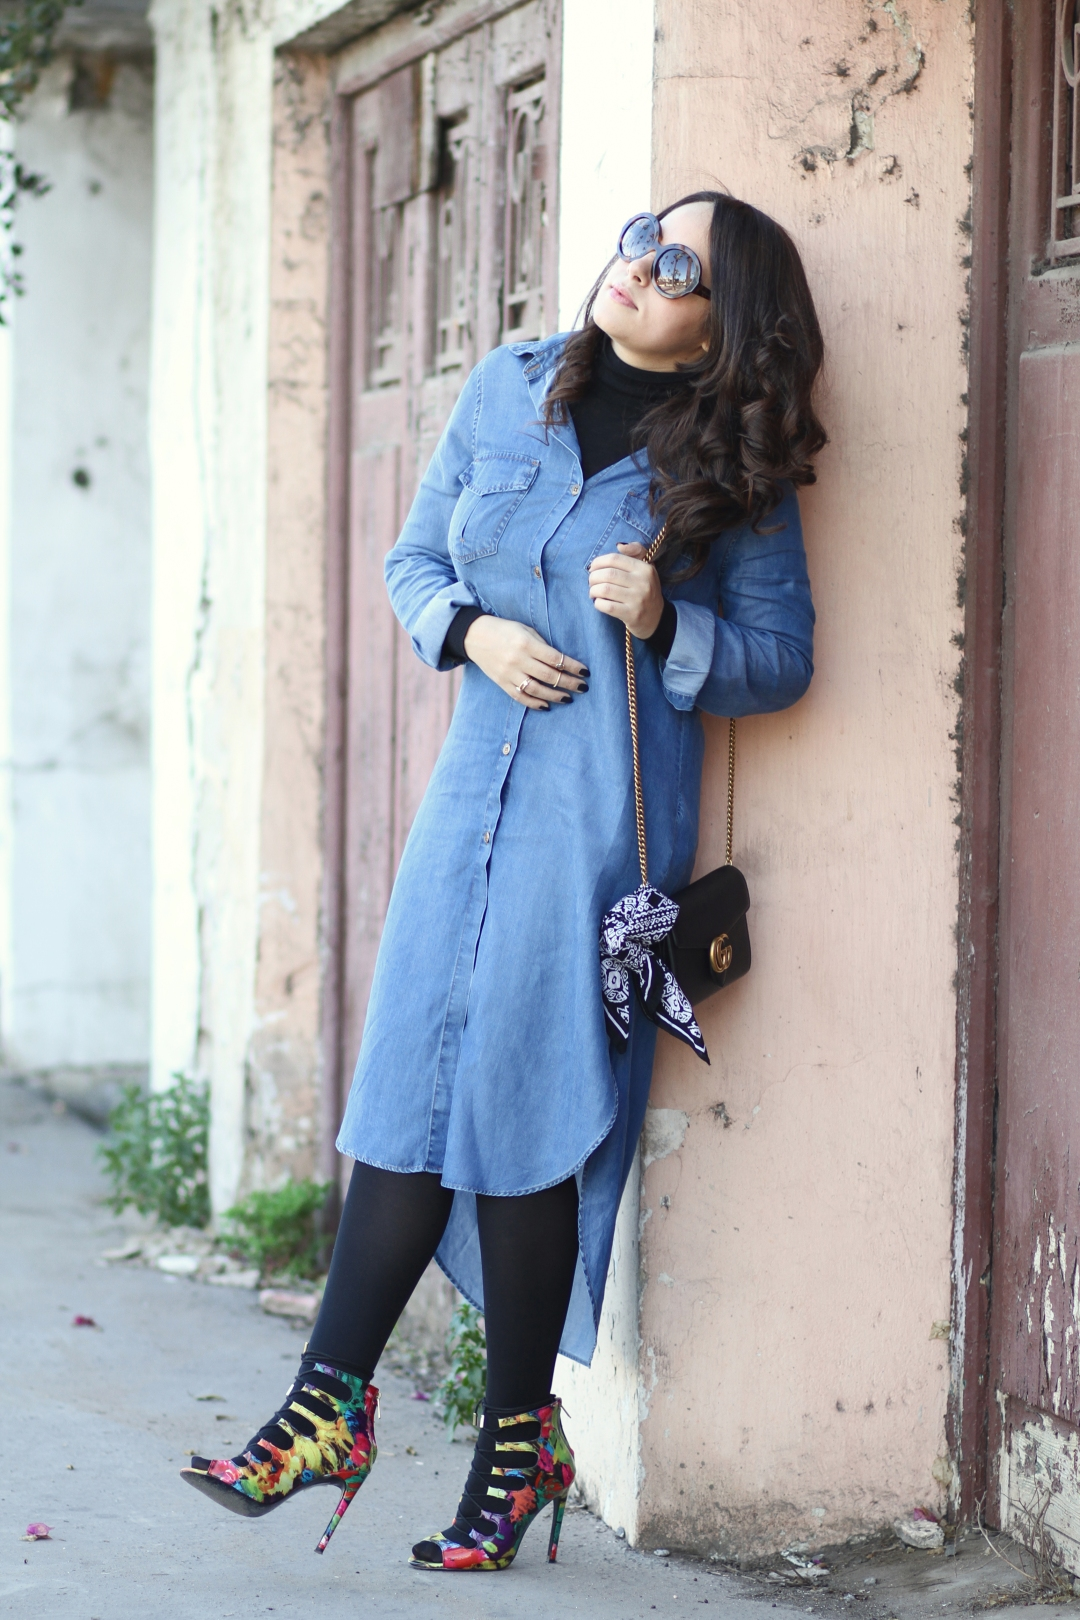 Denim-dress-blog-mode-chiccarpediem-1